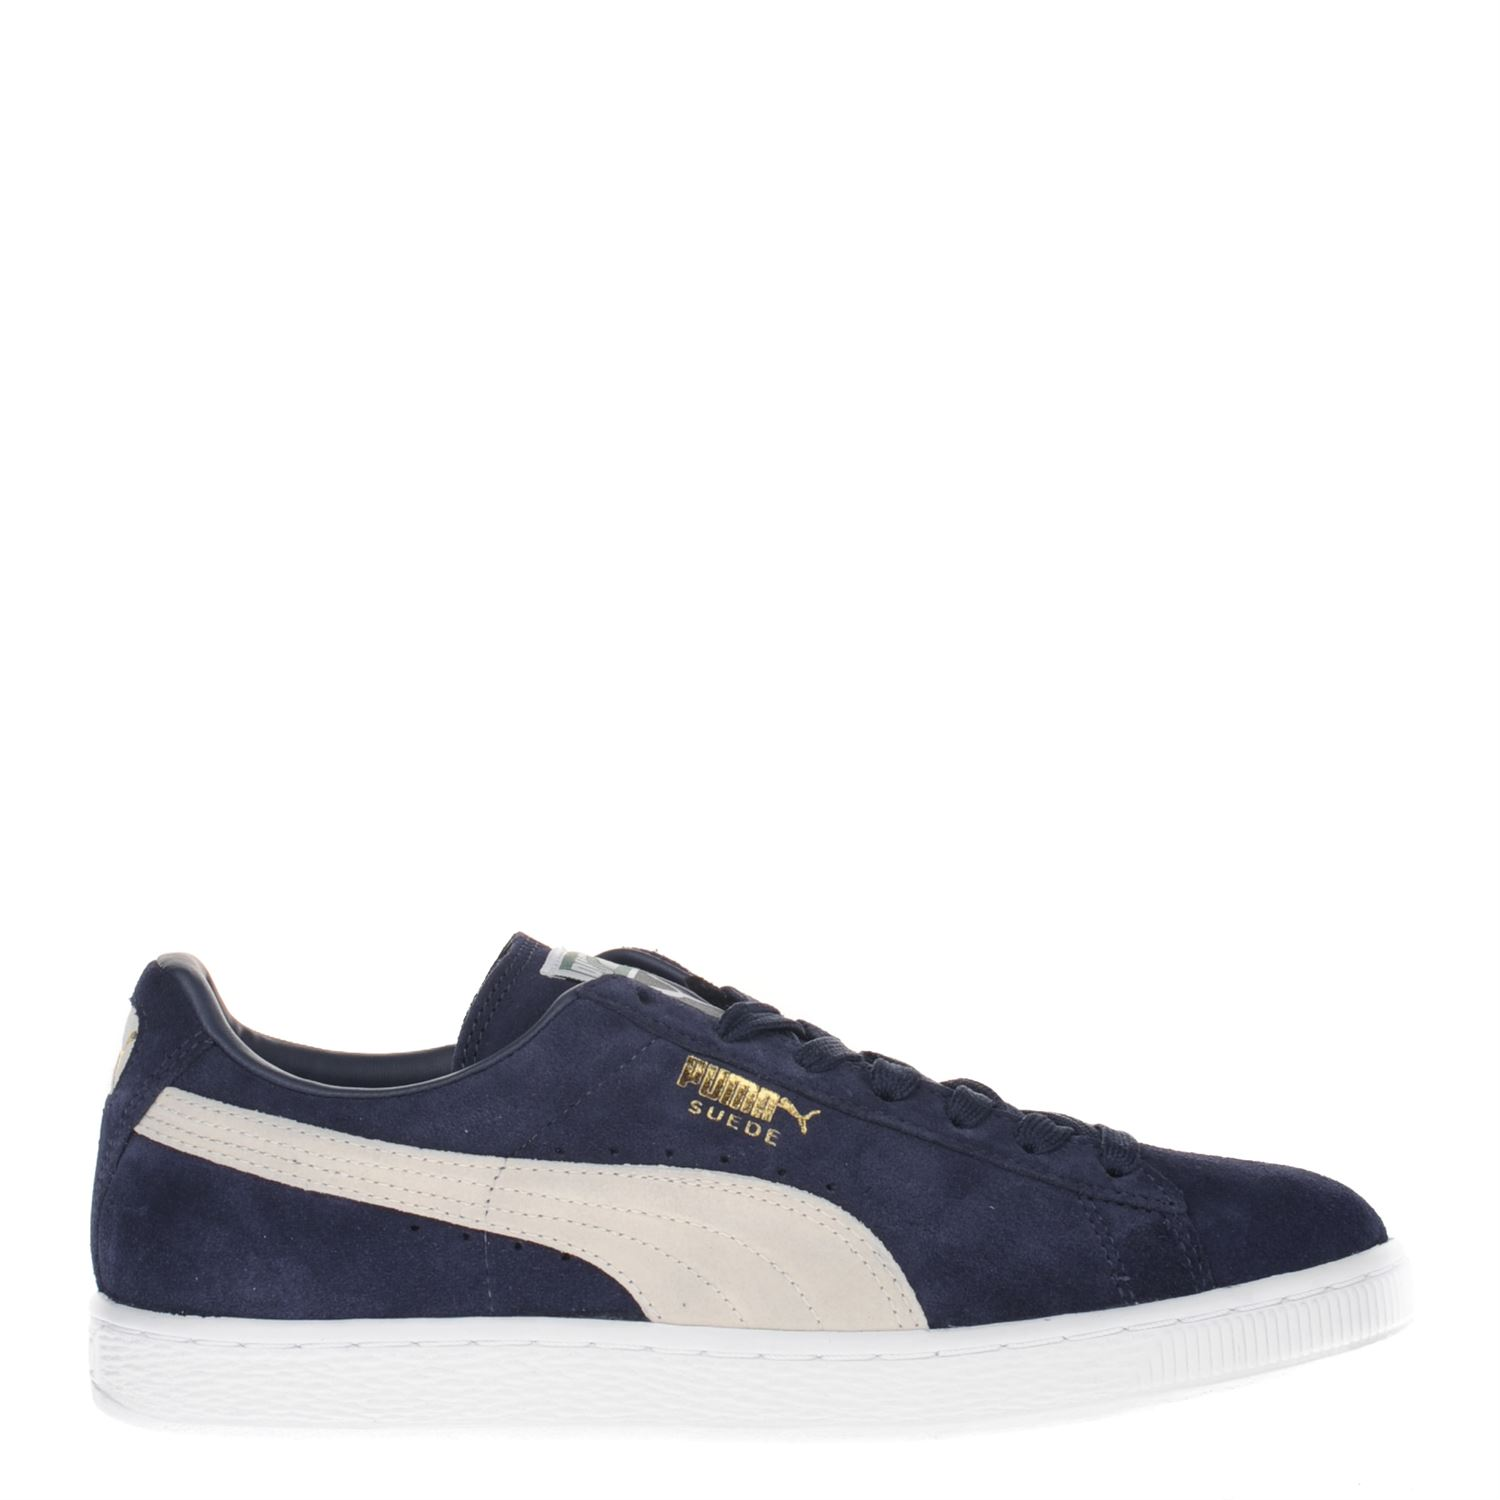 8f34be9e664 Puma Suede Classic heren lage sneakers blauw